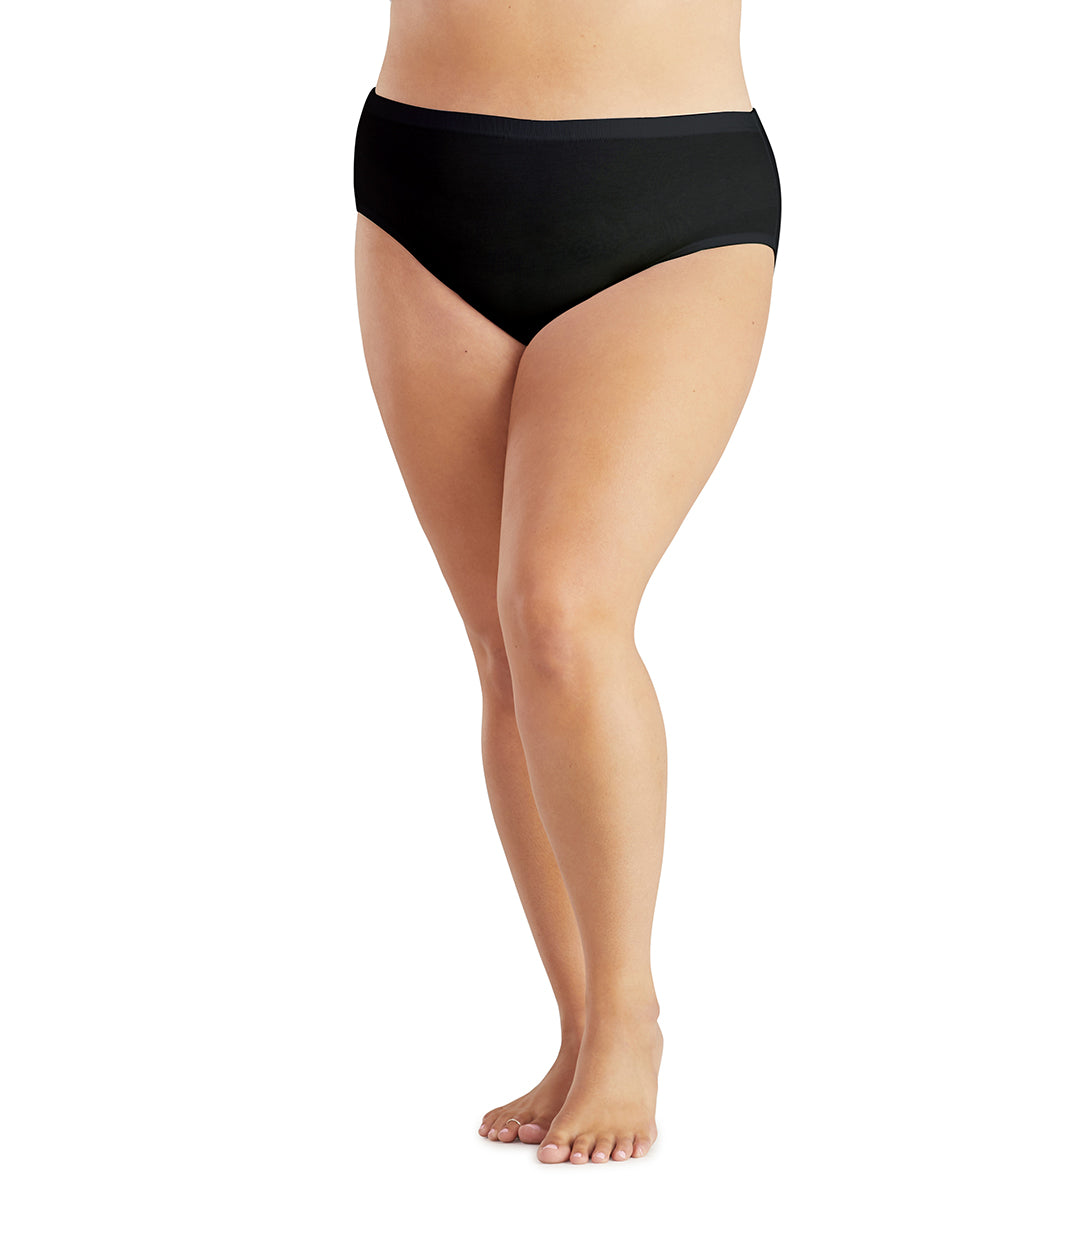 Junowear Hush Midrise Brief-Plus Size Underwear & Intimates-Hop Wo Trading Co Ltd-1X-Black-JunoActive